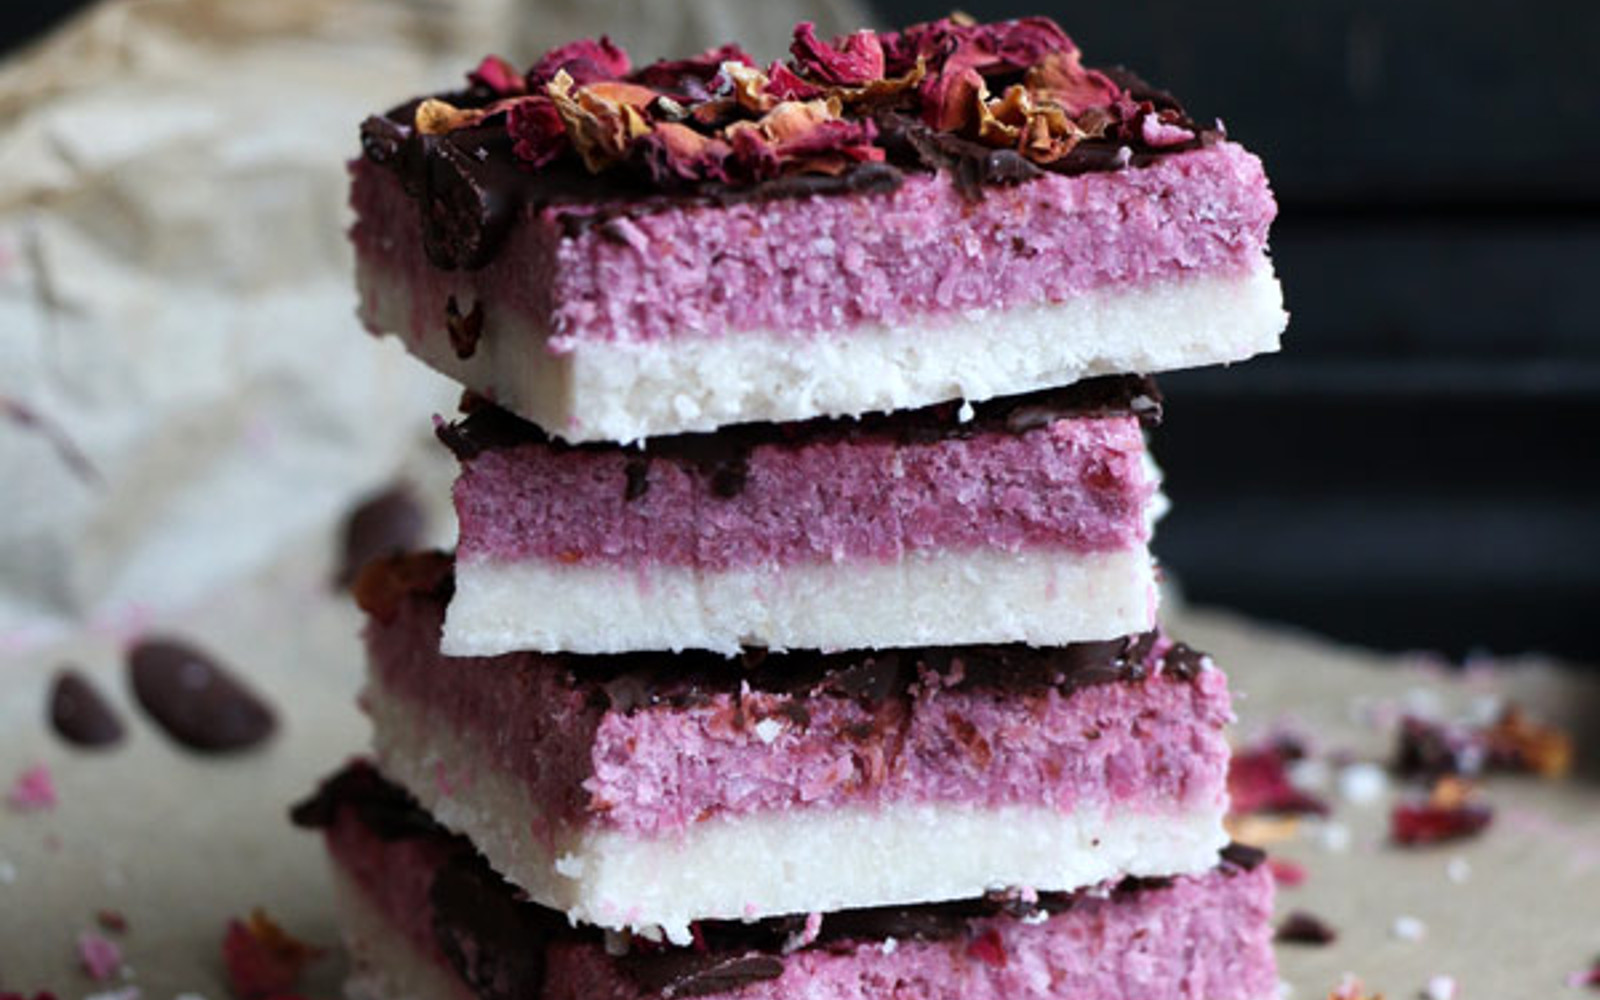 Raw-Coconut-and-Rawberry-Bars-With-a-Chocolate-Drizzle